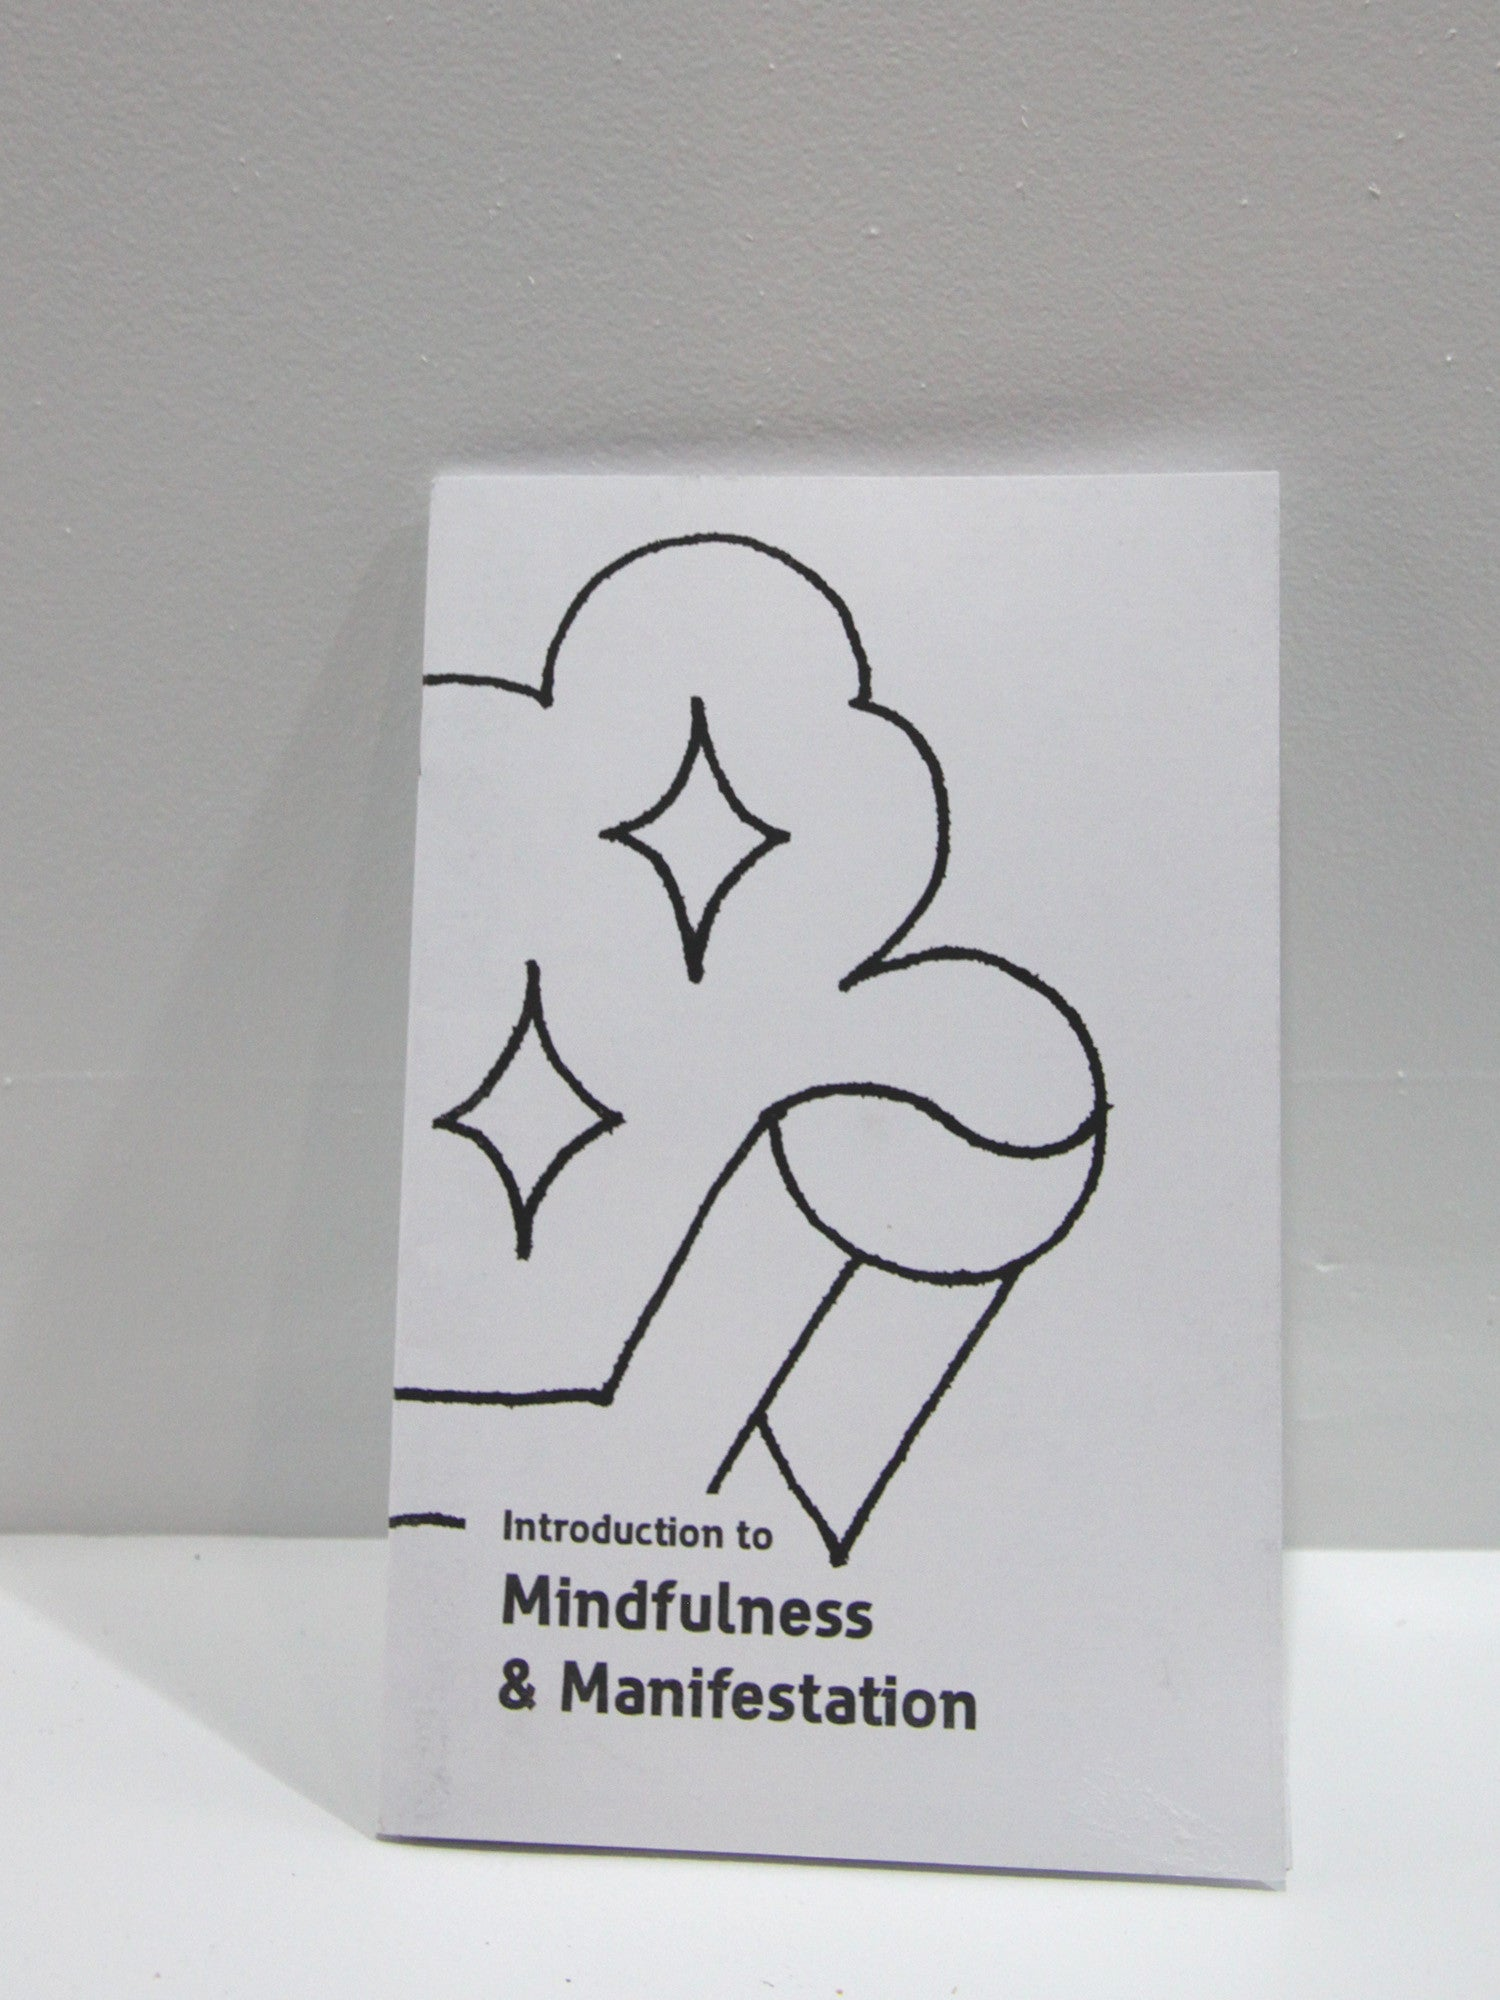 Introduction to Mindfulness & Manifestation | Microcosm Publishing at Sustain - Gallery and Shop - Chicago, IL